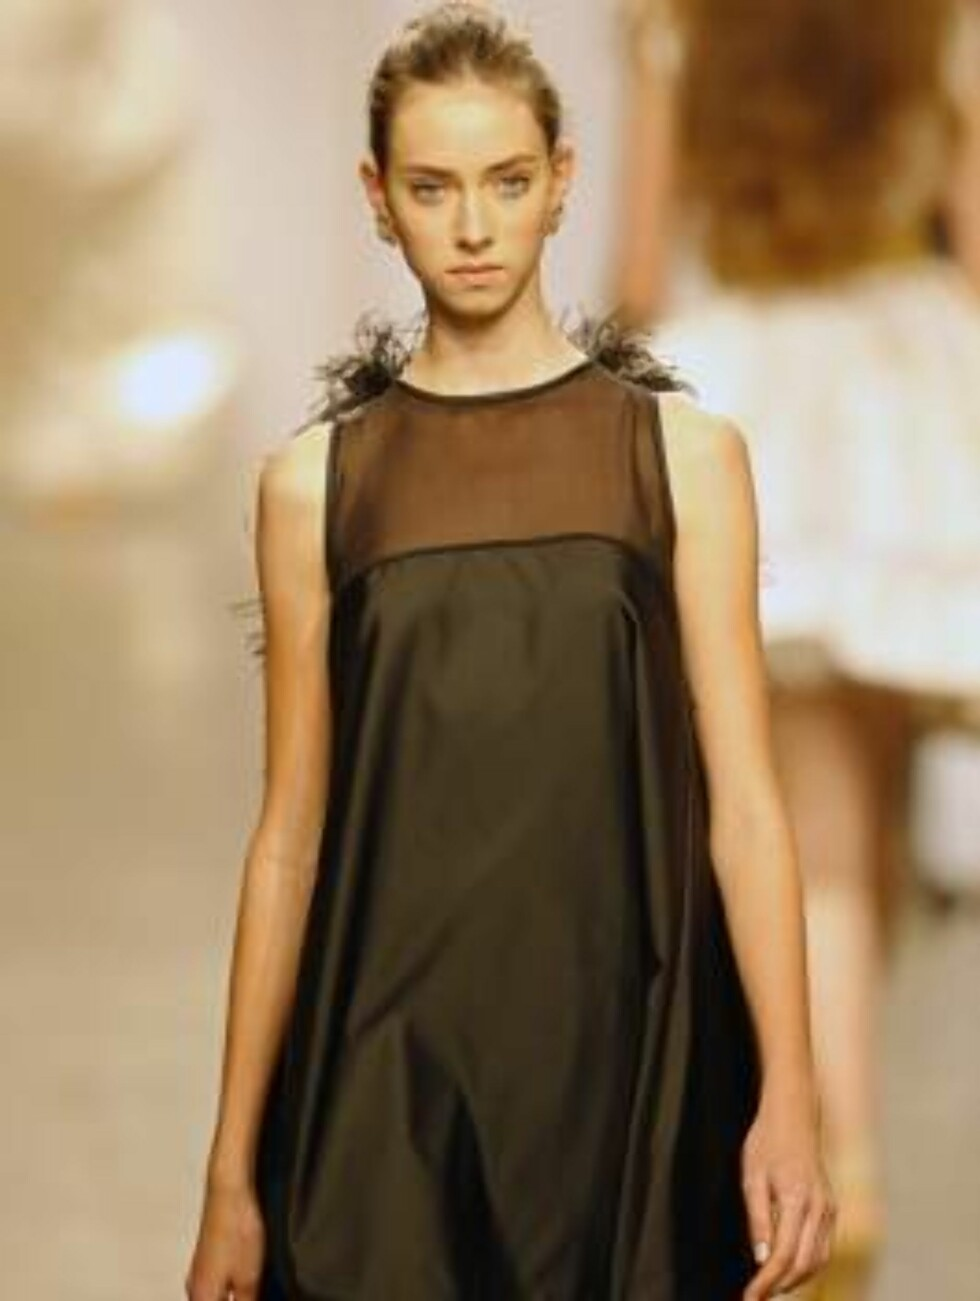 A model shows a design of  Fause Hatens`s collection during the Sao Paulo Fashion Week in Sao Paulo, Brazil,  Friday, July 14, 2006.   (AP Photo/Andre Penner) Foto: AP/Scanpix